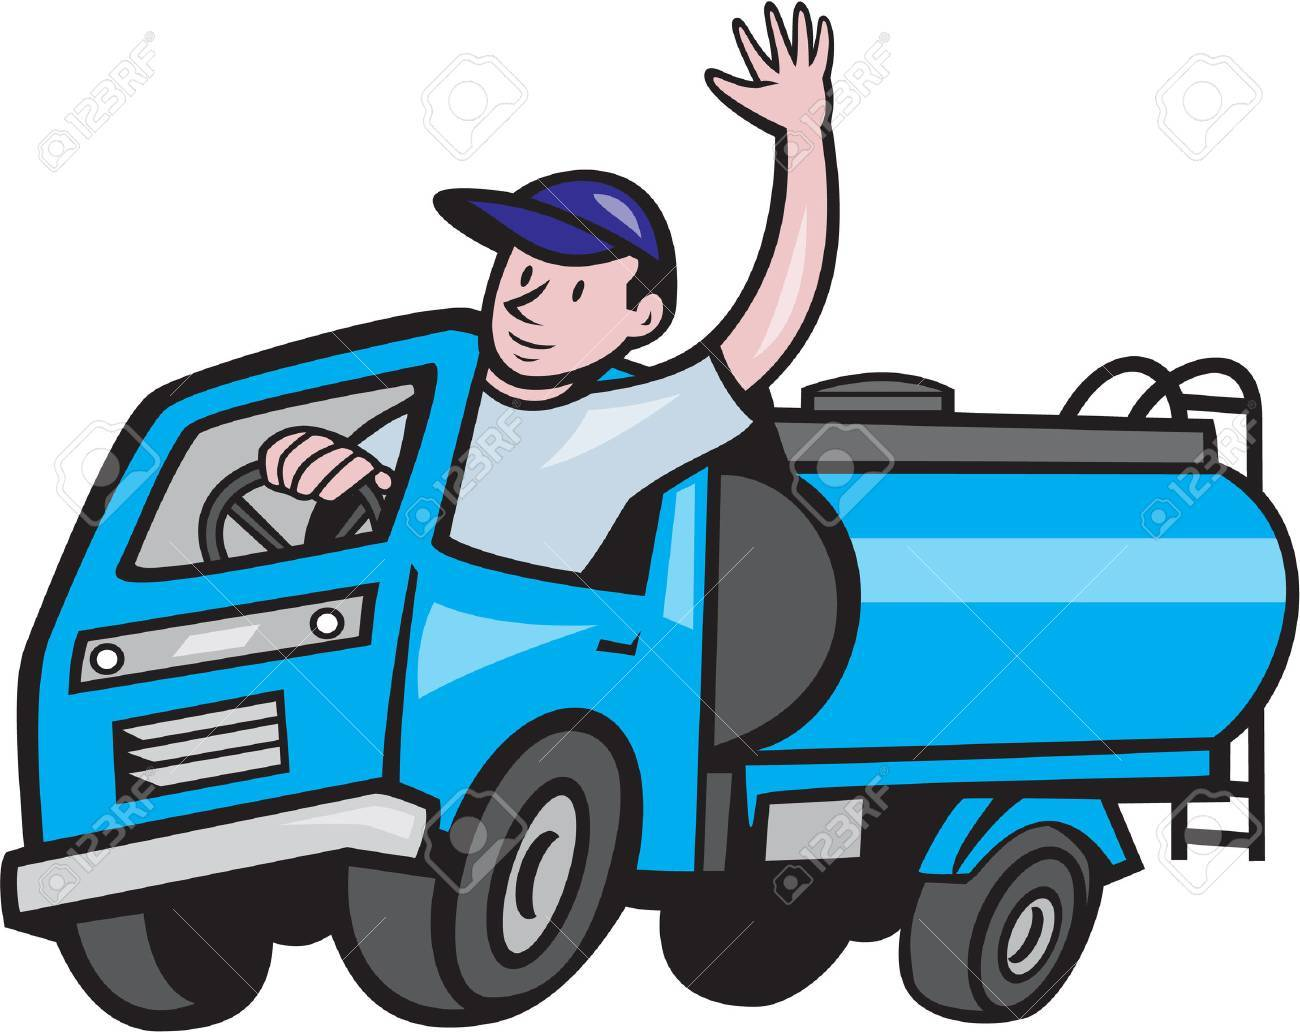 Illustration of a 4 wheeler baby tanker truck petrol tanker with driver waving hello on isolated white background done in cartoon style. - 75306107